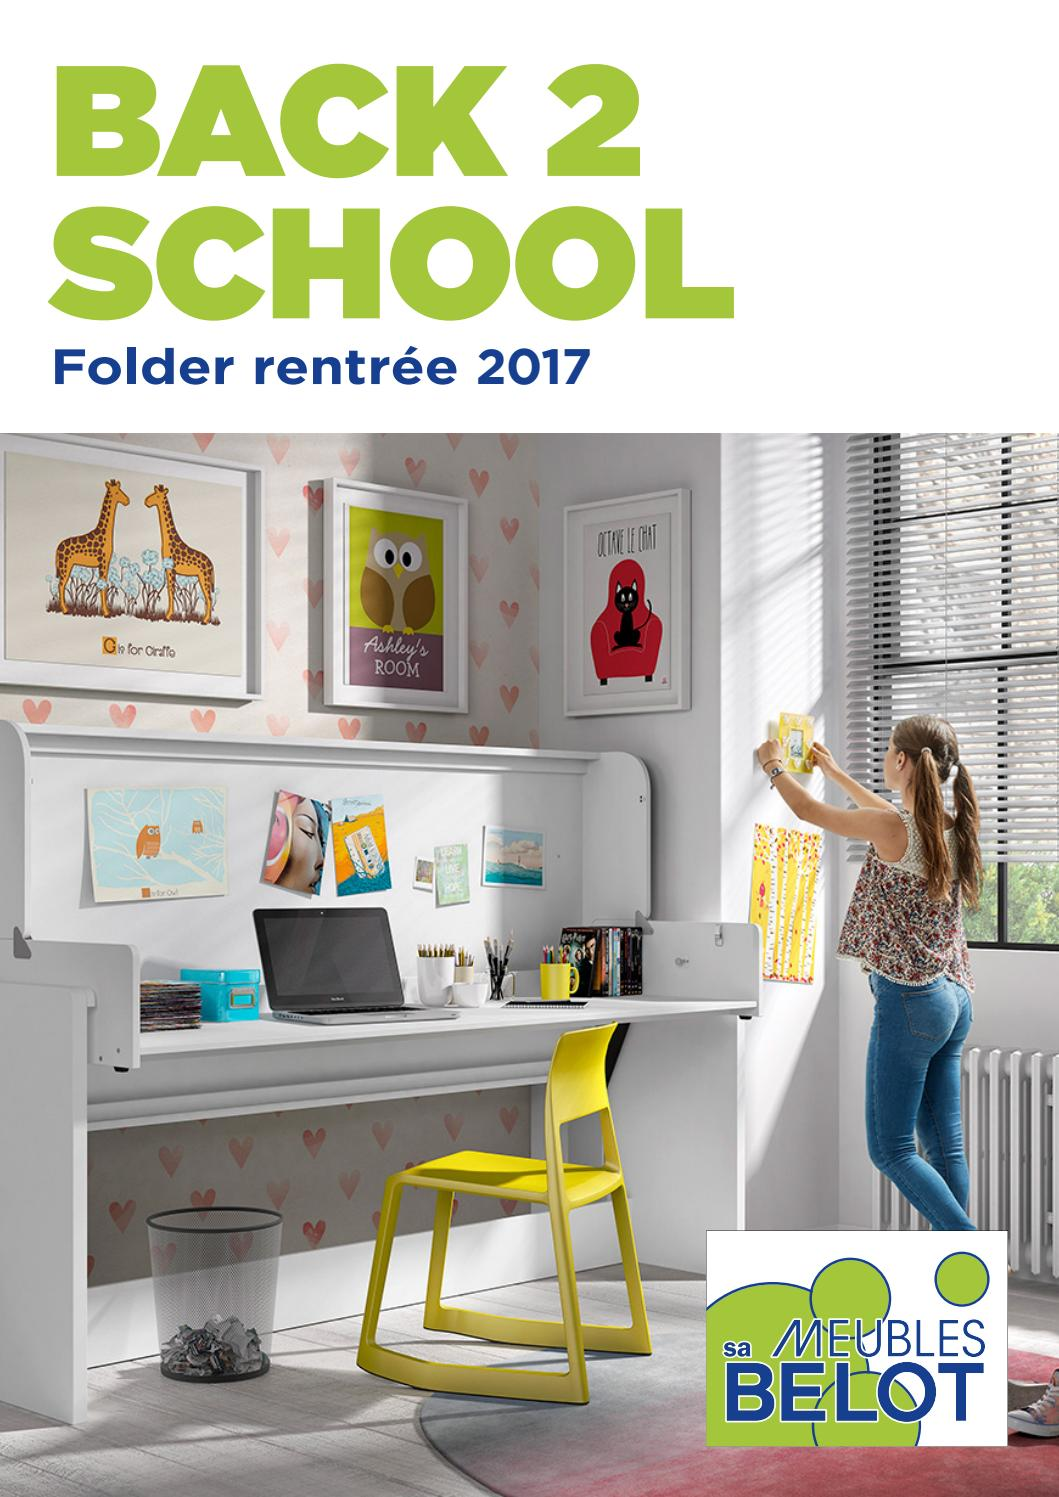 Pub Meubles Belot Belot Folders Back2school By Meubles Belot Sa Issuu